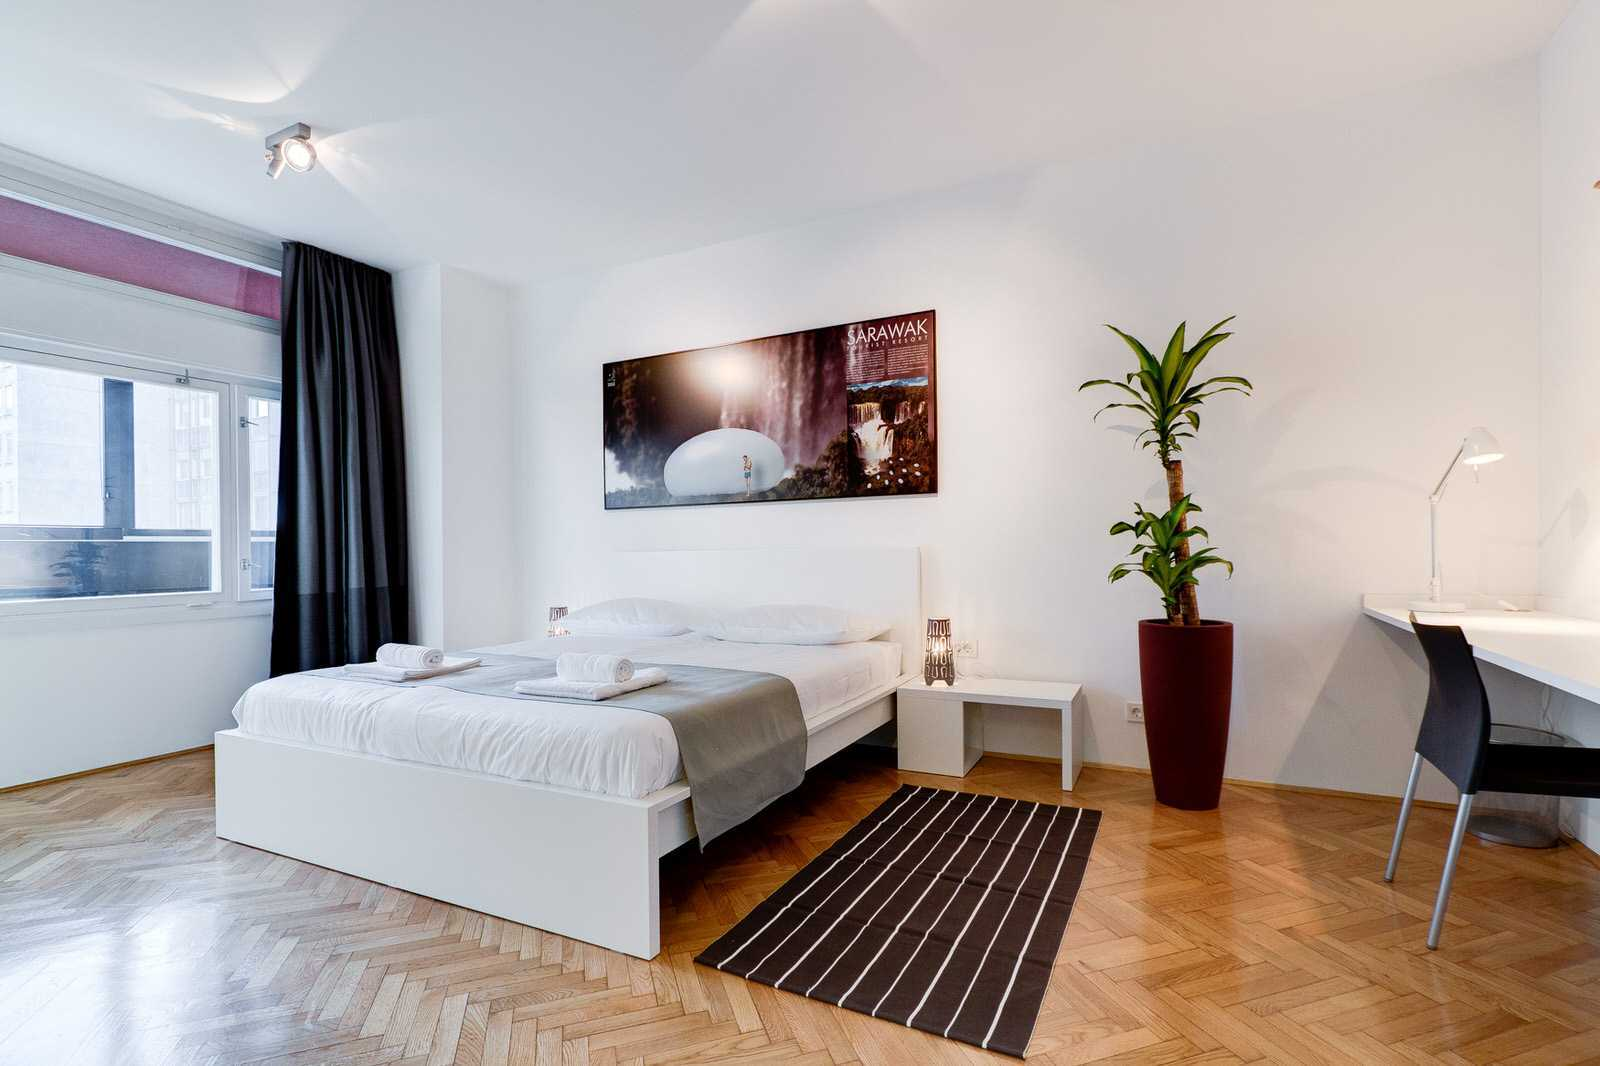 Master bedroom of this rental apartment.